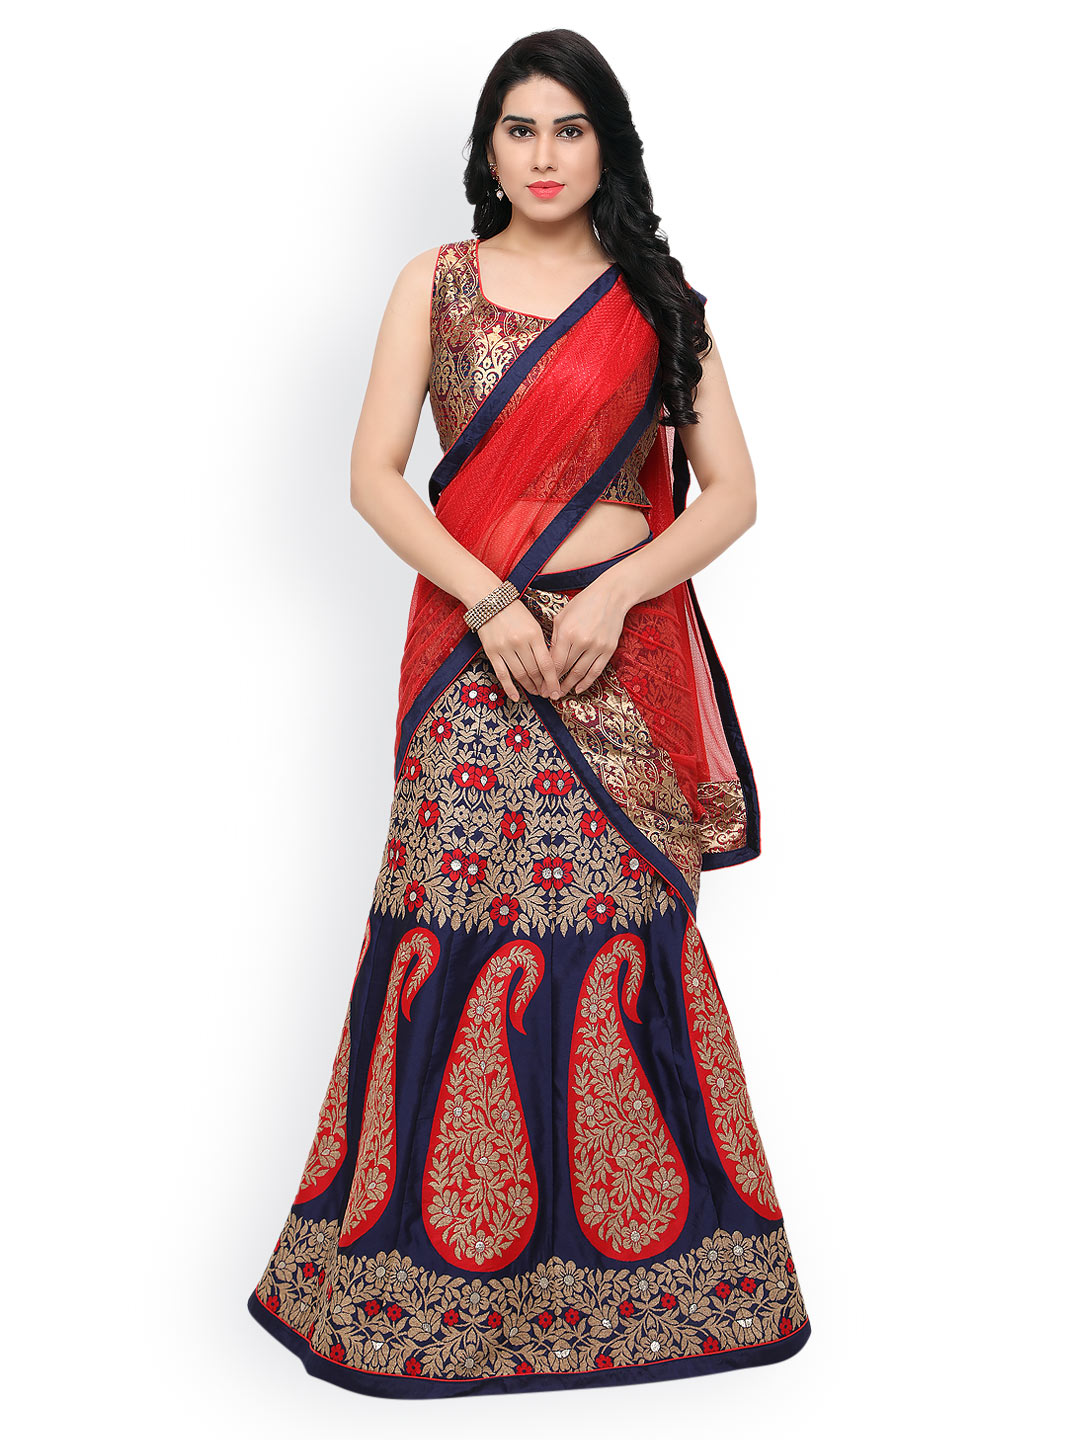 Styles Closet Blue Patterned Taffeta Lehenga Choli with Dupatta Price in India